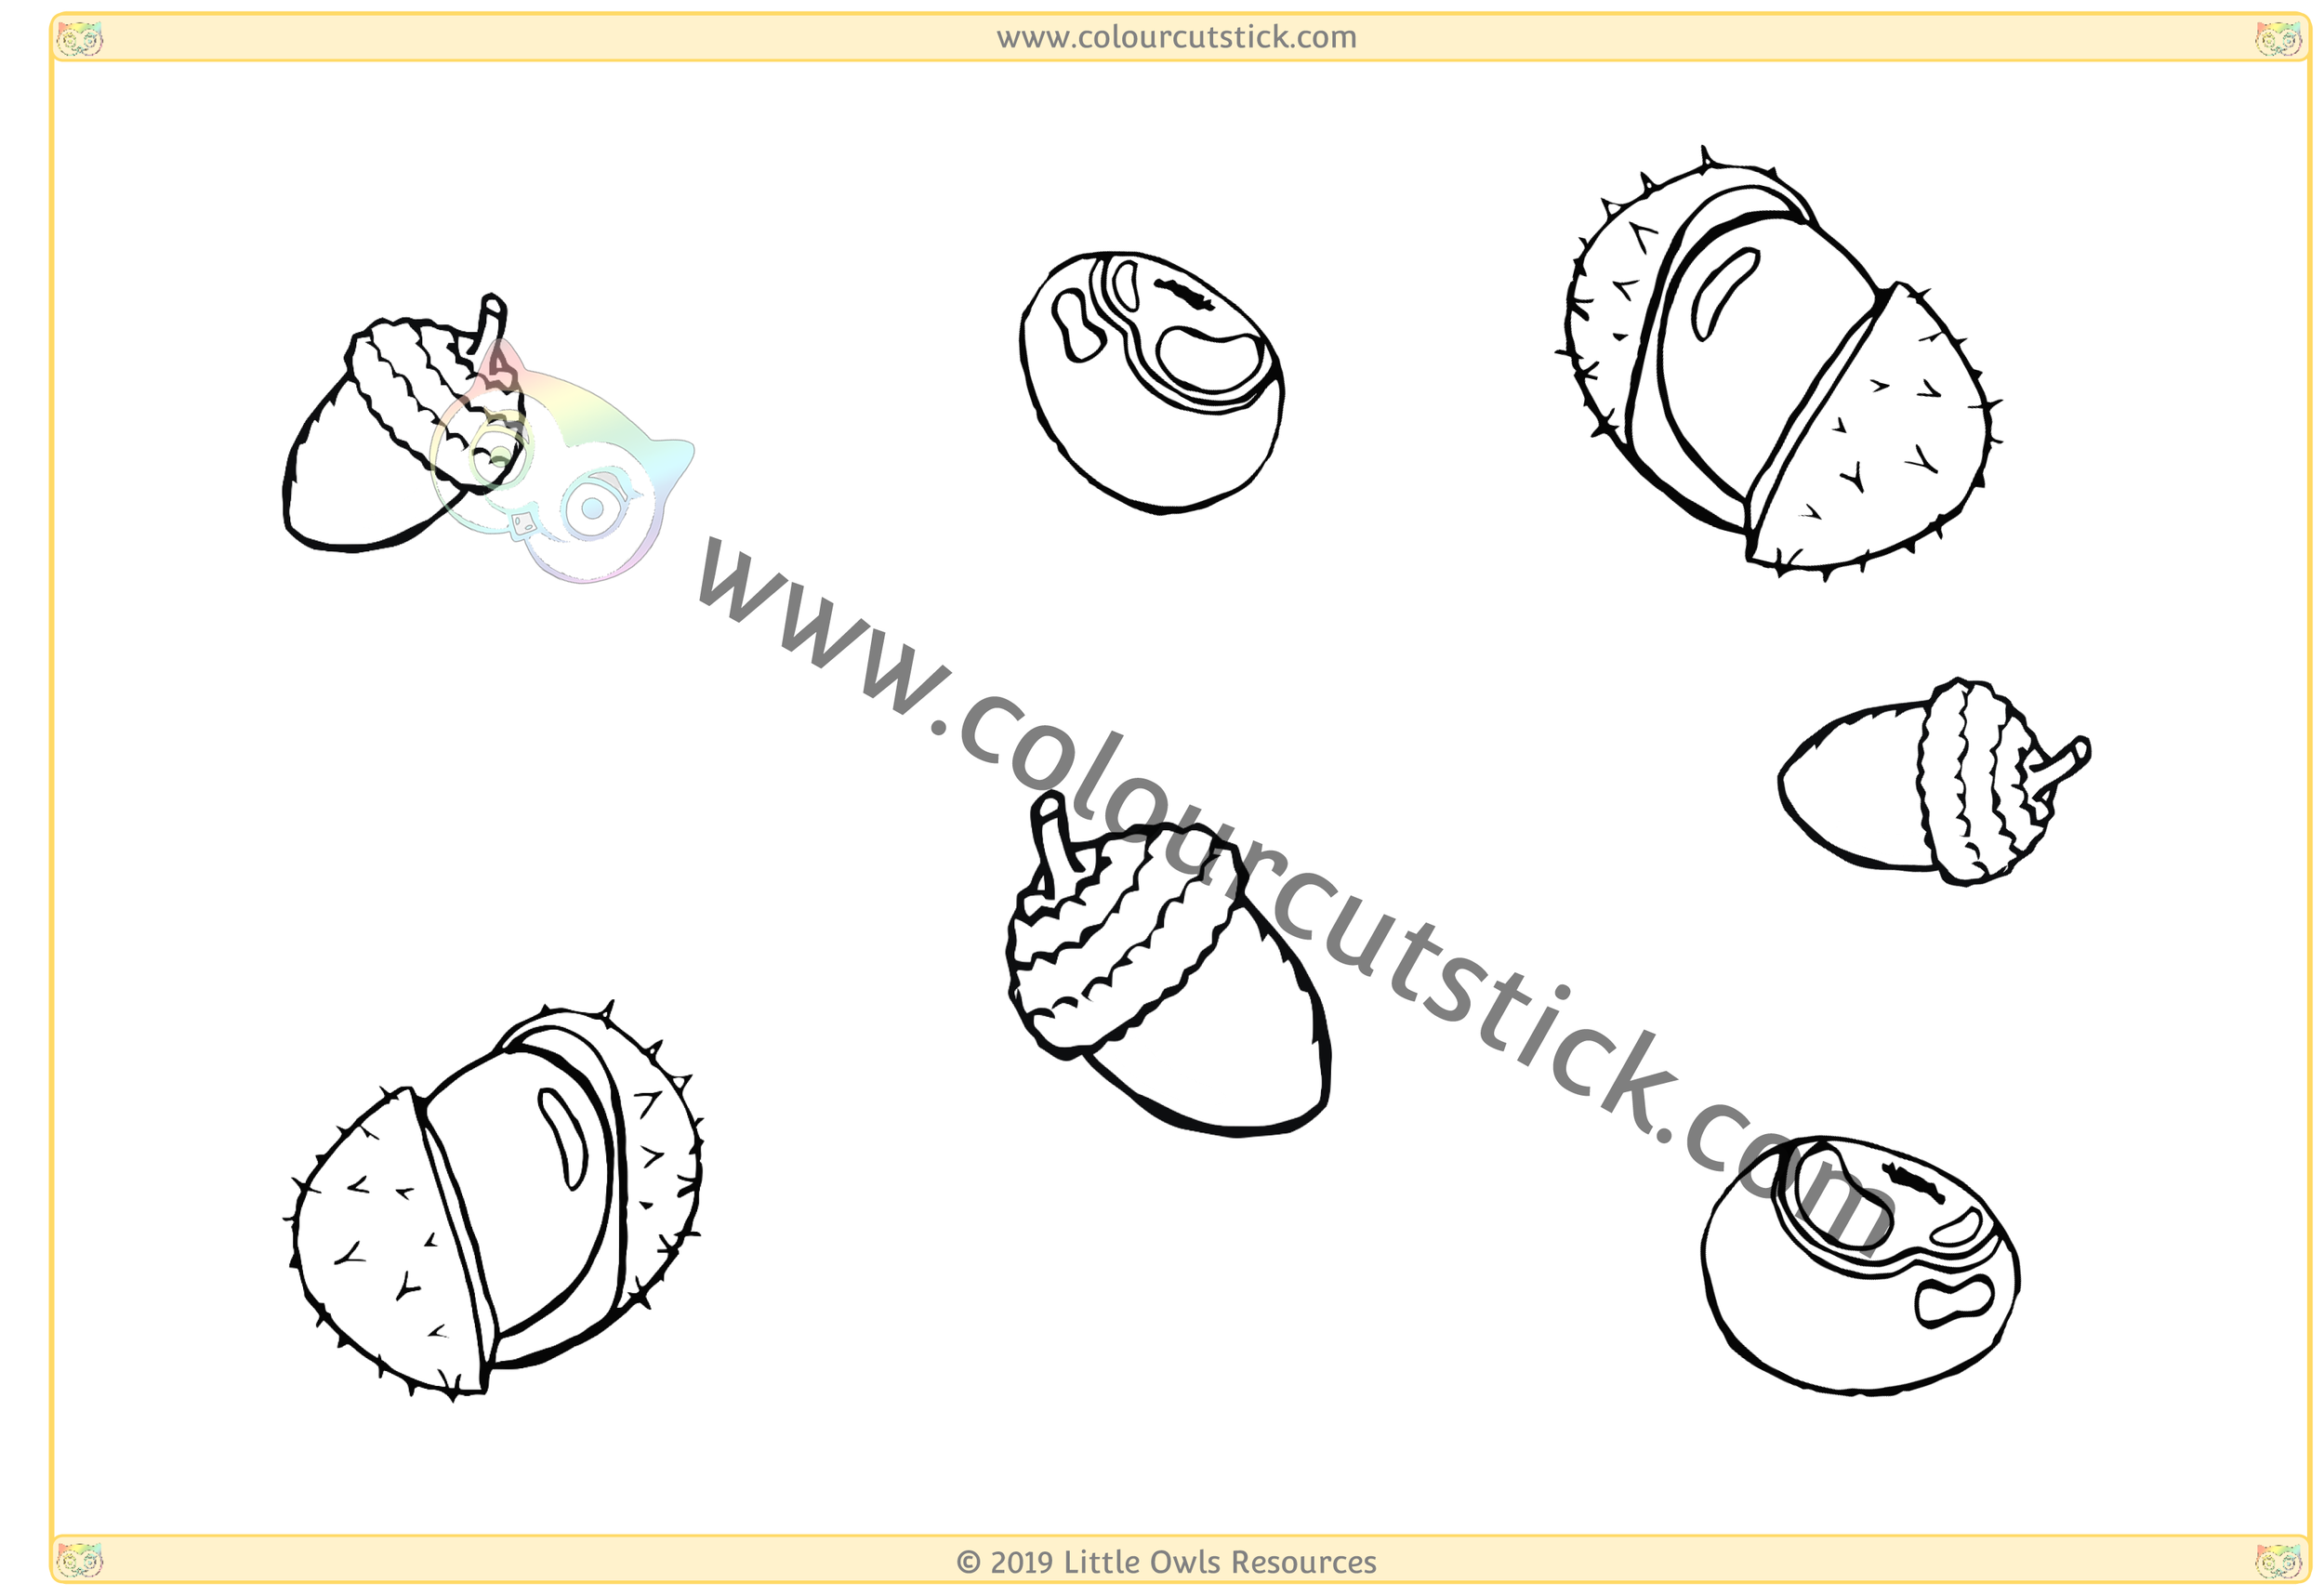 Conkers and Acorns -